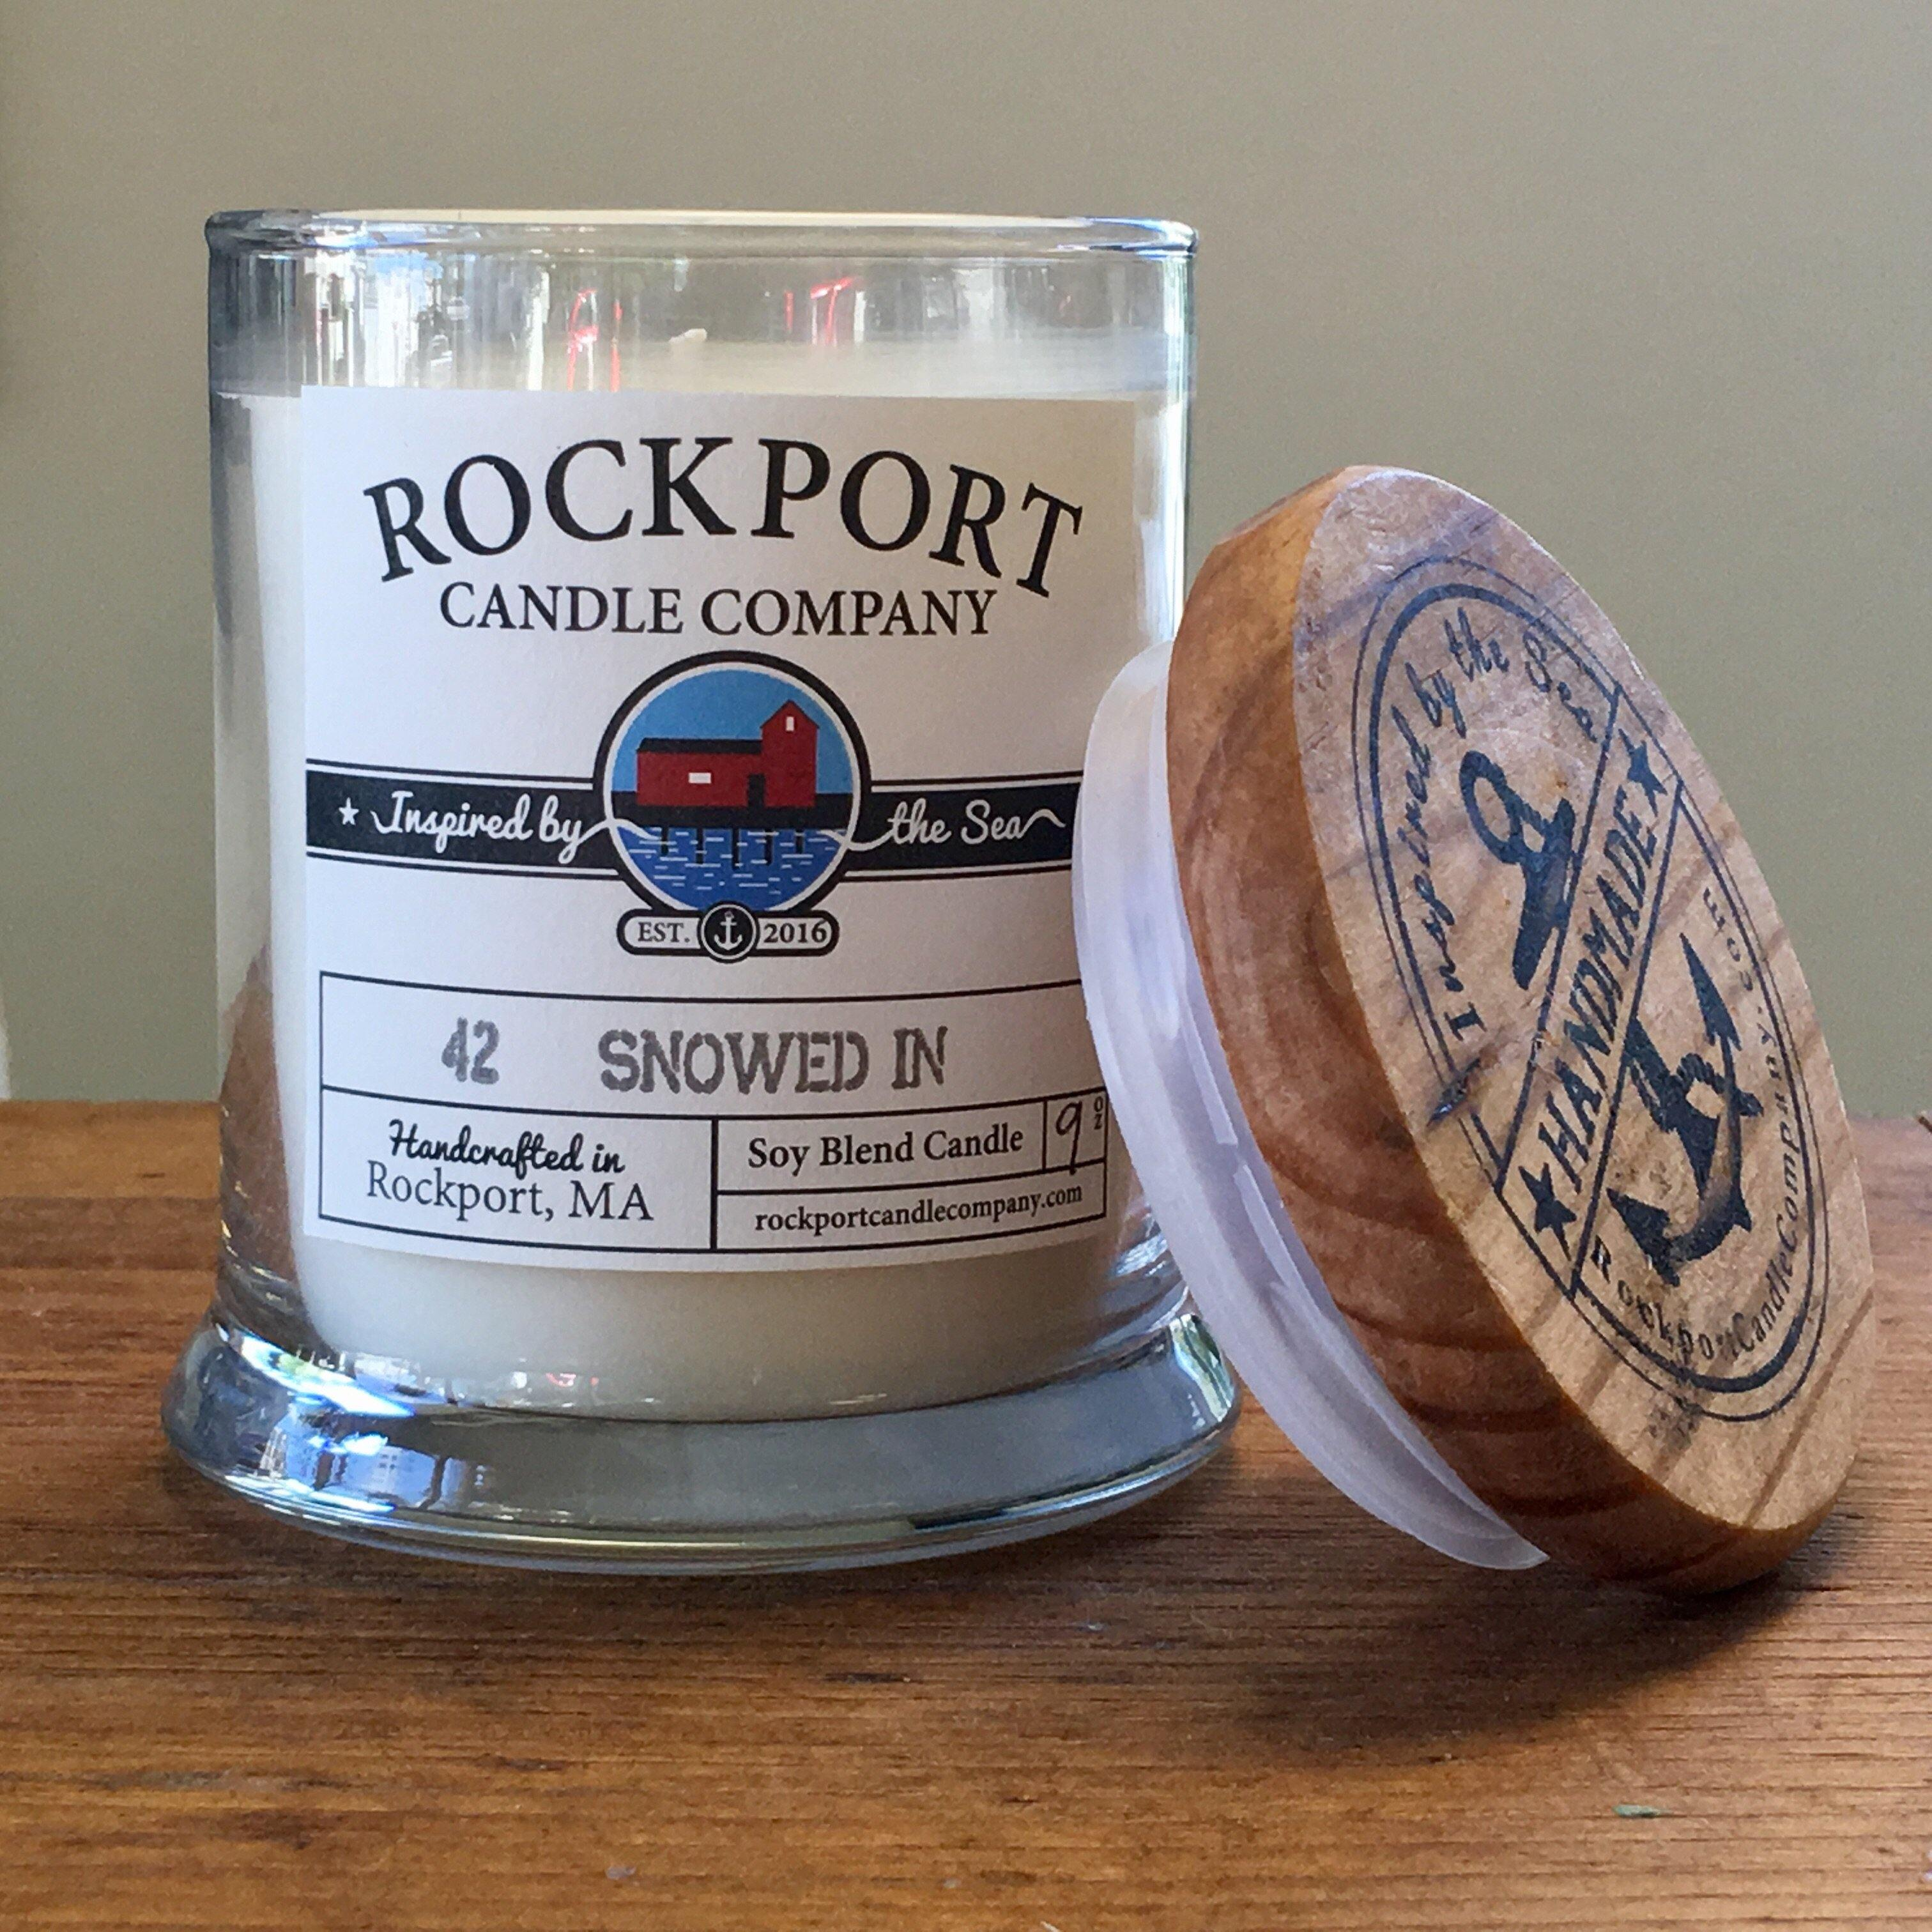 42 Snowed In - Rockport Candle Company